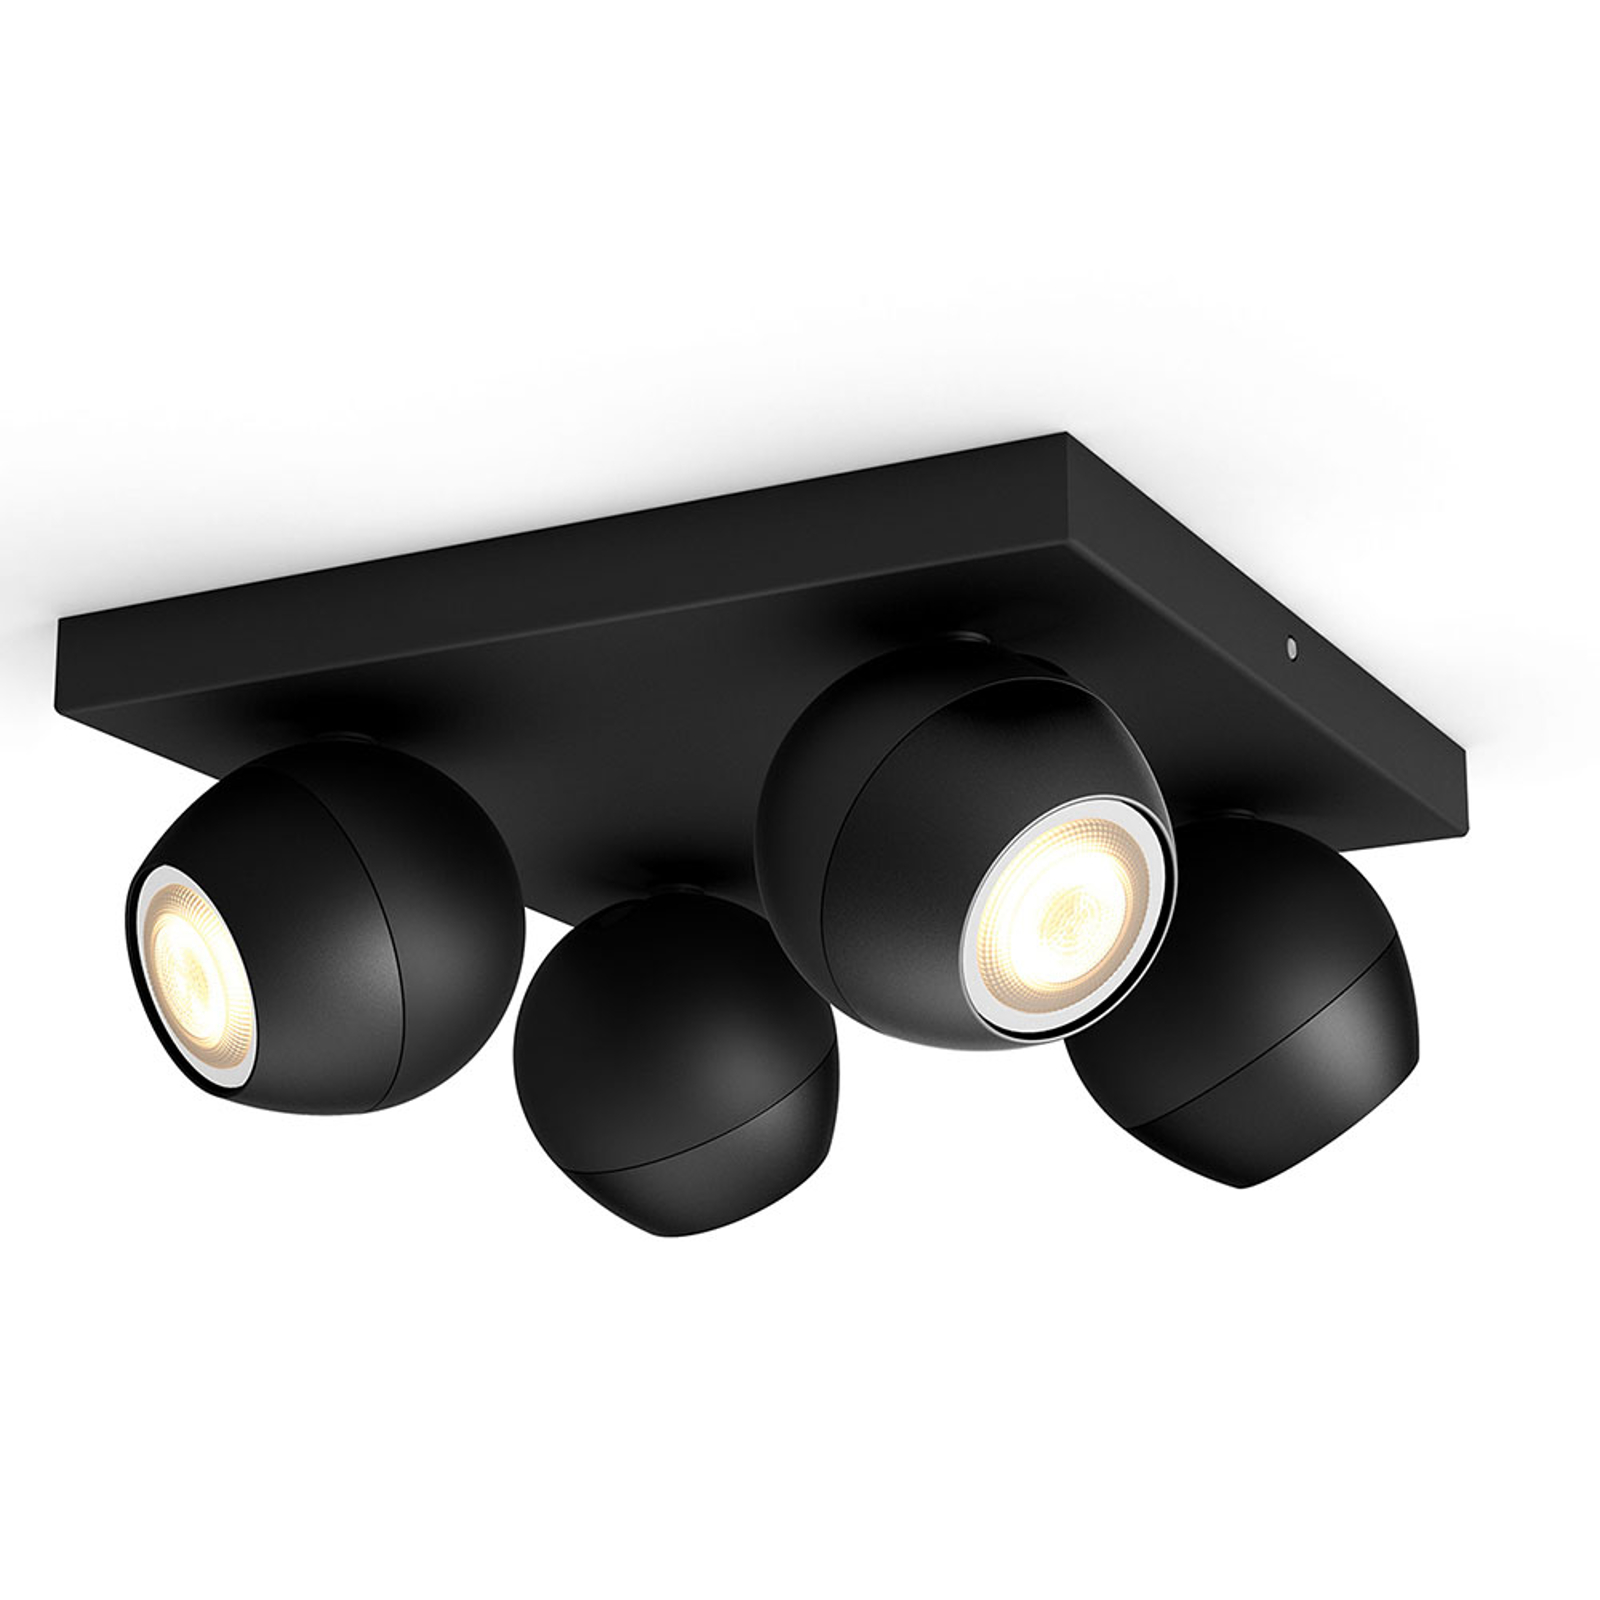 Acquista Philips Hue Buckram 4 luci dimmer nero